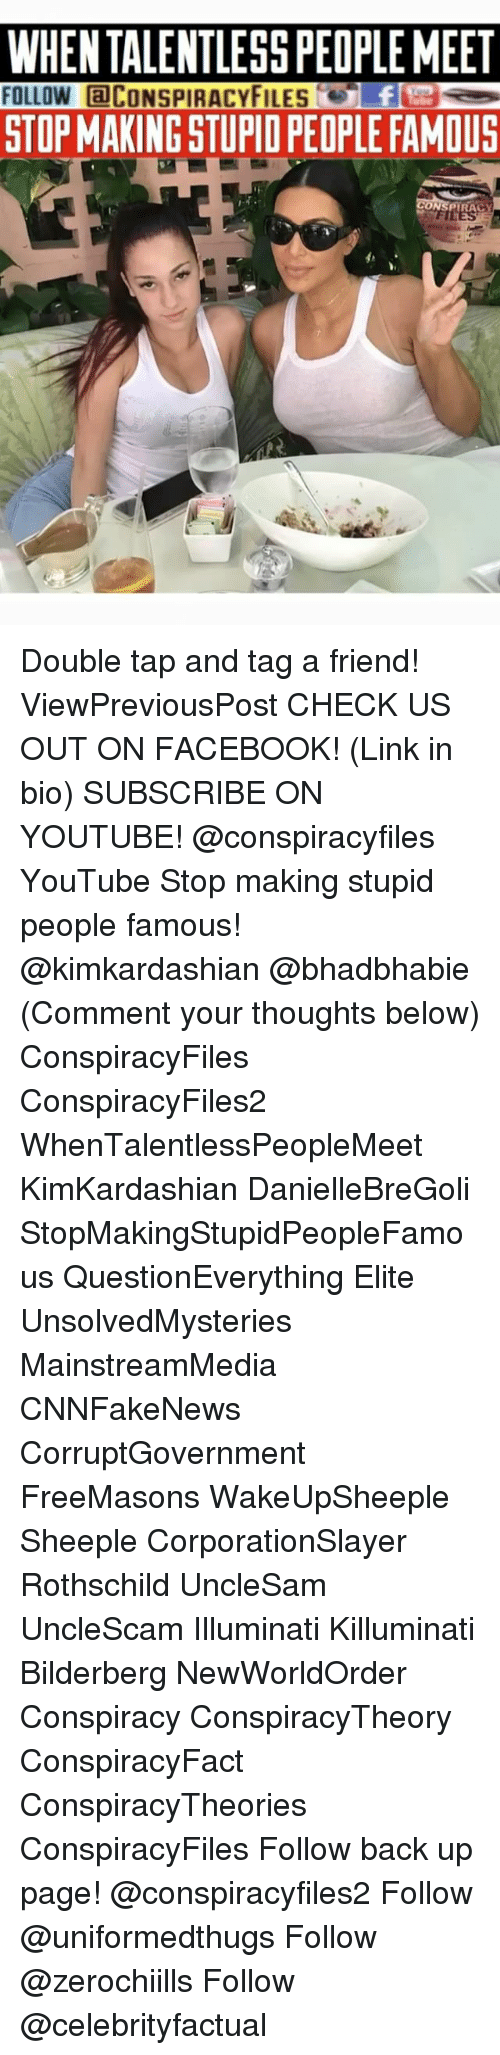 killuminati: WHEN TALENTLESS PEOPLEMEET  FOLLOW @CONSPIRACYFILES'.-Ly  STOP MAKING STUPIO PEOPLE FAMOUS Double tap and tag a friend! ViewPreviousPost CHECK US OUT ON FACEBOOK! (Link in bio) SUBSCRIBE ON YOUTUBE! @conspiracyfiles YouTube Stop making stupid people famous! @kimkardashian @bhadbhabie (Comment your thoughts below) ConspiracyFiles ConspiracyFiles2 WhenTalentlessPeopleMeet KimKardashian DanielleBreGoli StopMakingStupidPeopleFamous QuestionEverything Elite UnsolvedMysteries MainstreamMedia CNNFakeNews CorruptGovernment FreeMasons WakeUpSheeple Sheeple CorporationSlayer Rothschild UncleSam UncleScam Illuminati Killuminati Bilderberg NewWorldOrder Conspiracy ConspiracyTheory ConspiracyFact ConspiracyTheories ConspiracyFiles Follow back up page! @conspiracyfiles2 Follow @uniformedthugs Follow @zerochiills Follow @celebrityfactual